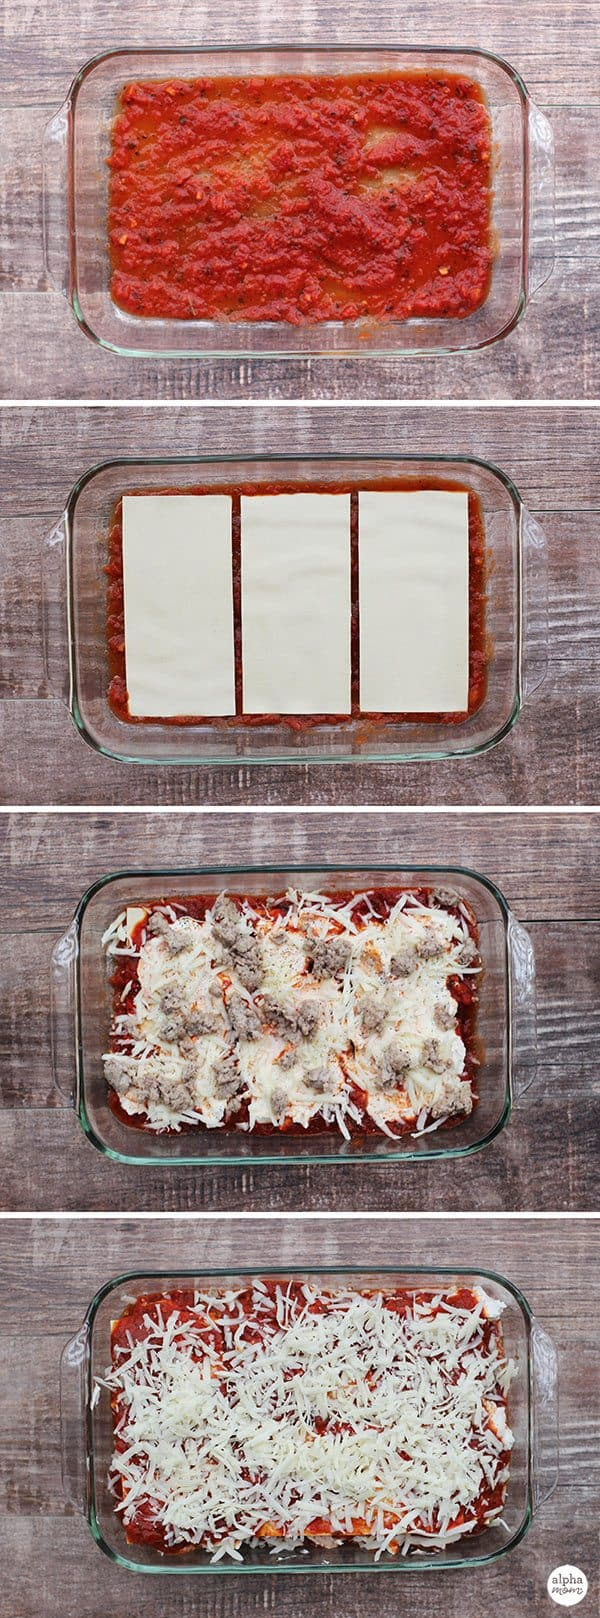 How to Make Lasagna (Recipes Kids Should Know Before Leaving Home from Alpha Mom)